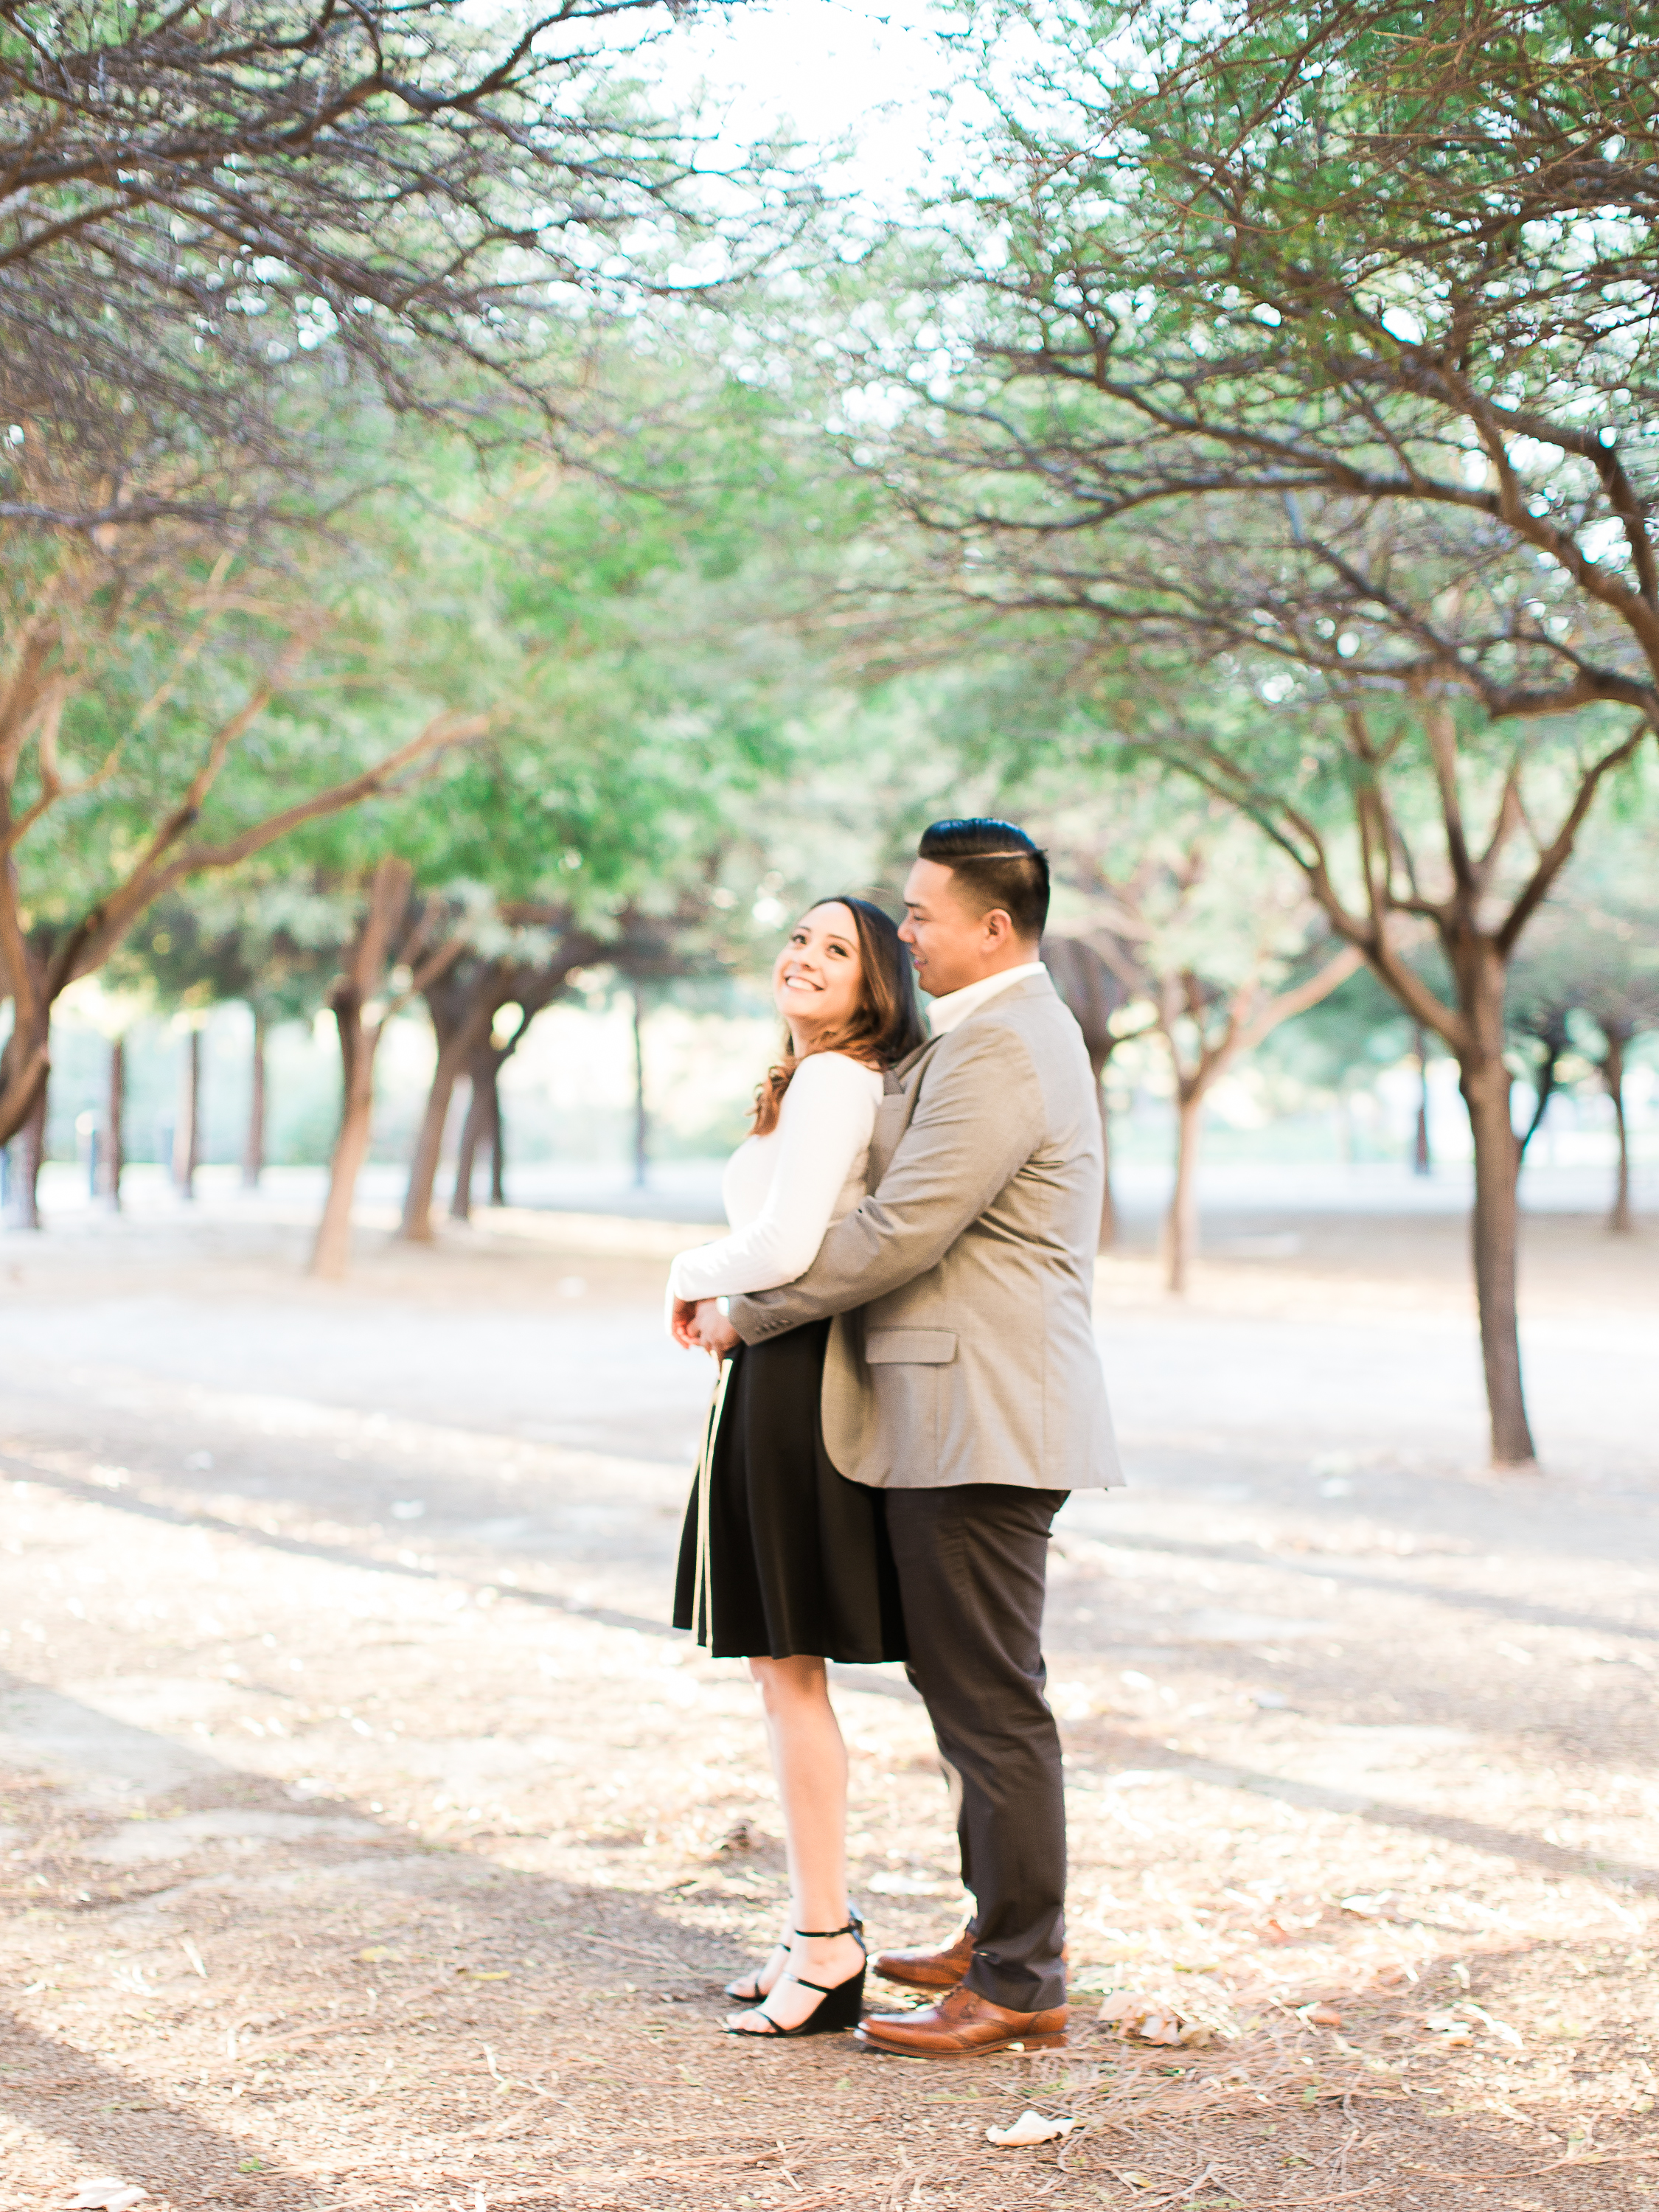 Klint and Yessy Engagement _ Brandon J Ferlin Photography-55.jpg